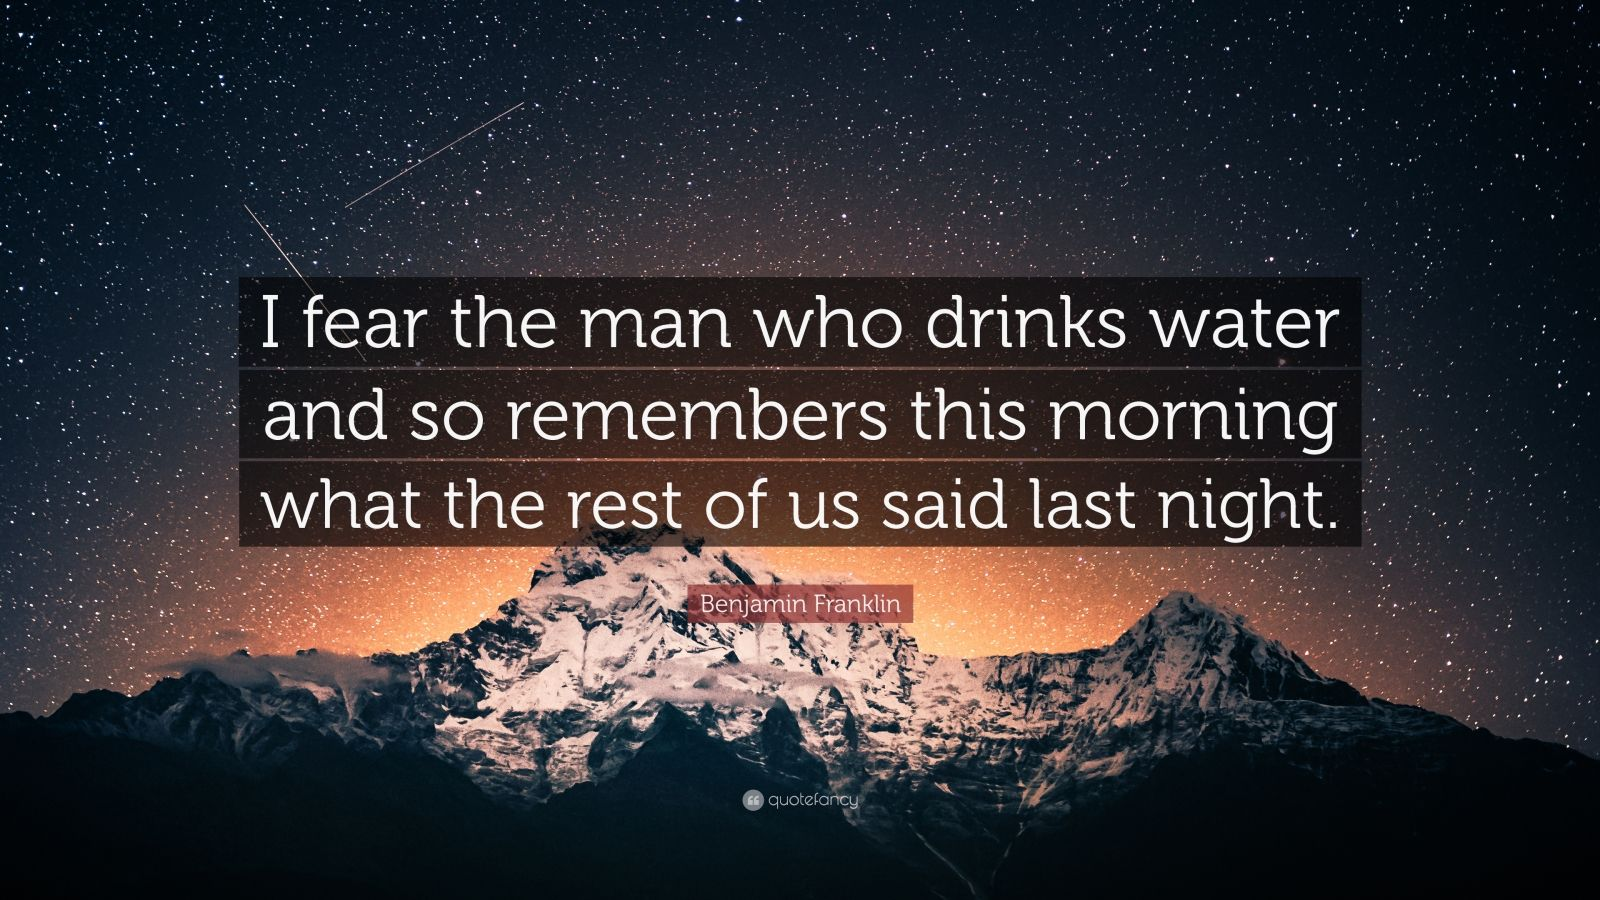 """Benjamin Franklin Quote: """"I fear the man who drinks water and so remembers this morning what the rest of us said last night."""""""